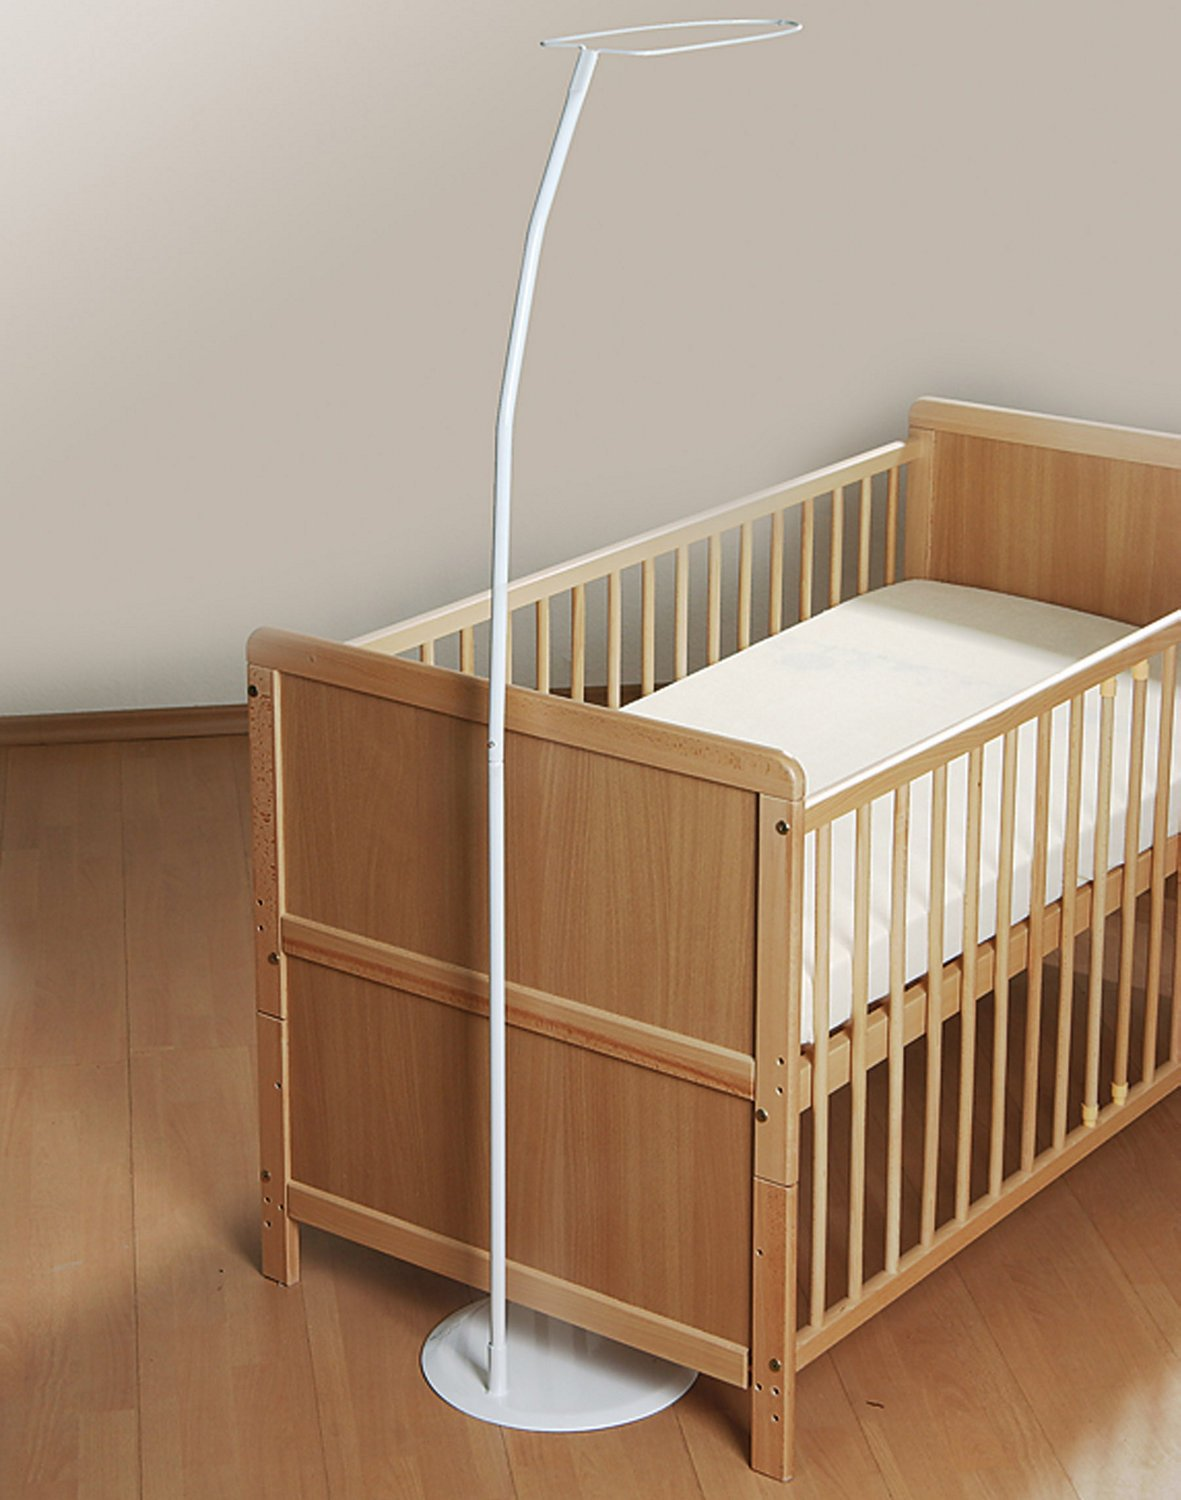 cunas para cama cortinas sala habitacion ventanas camas cunas cama cunas para tu bebe cunas. Black Bedroom Furniture Sets. Home Design Ideas